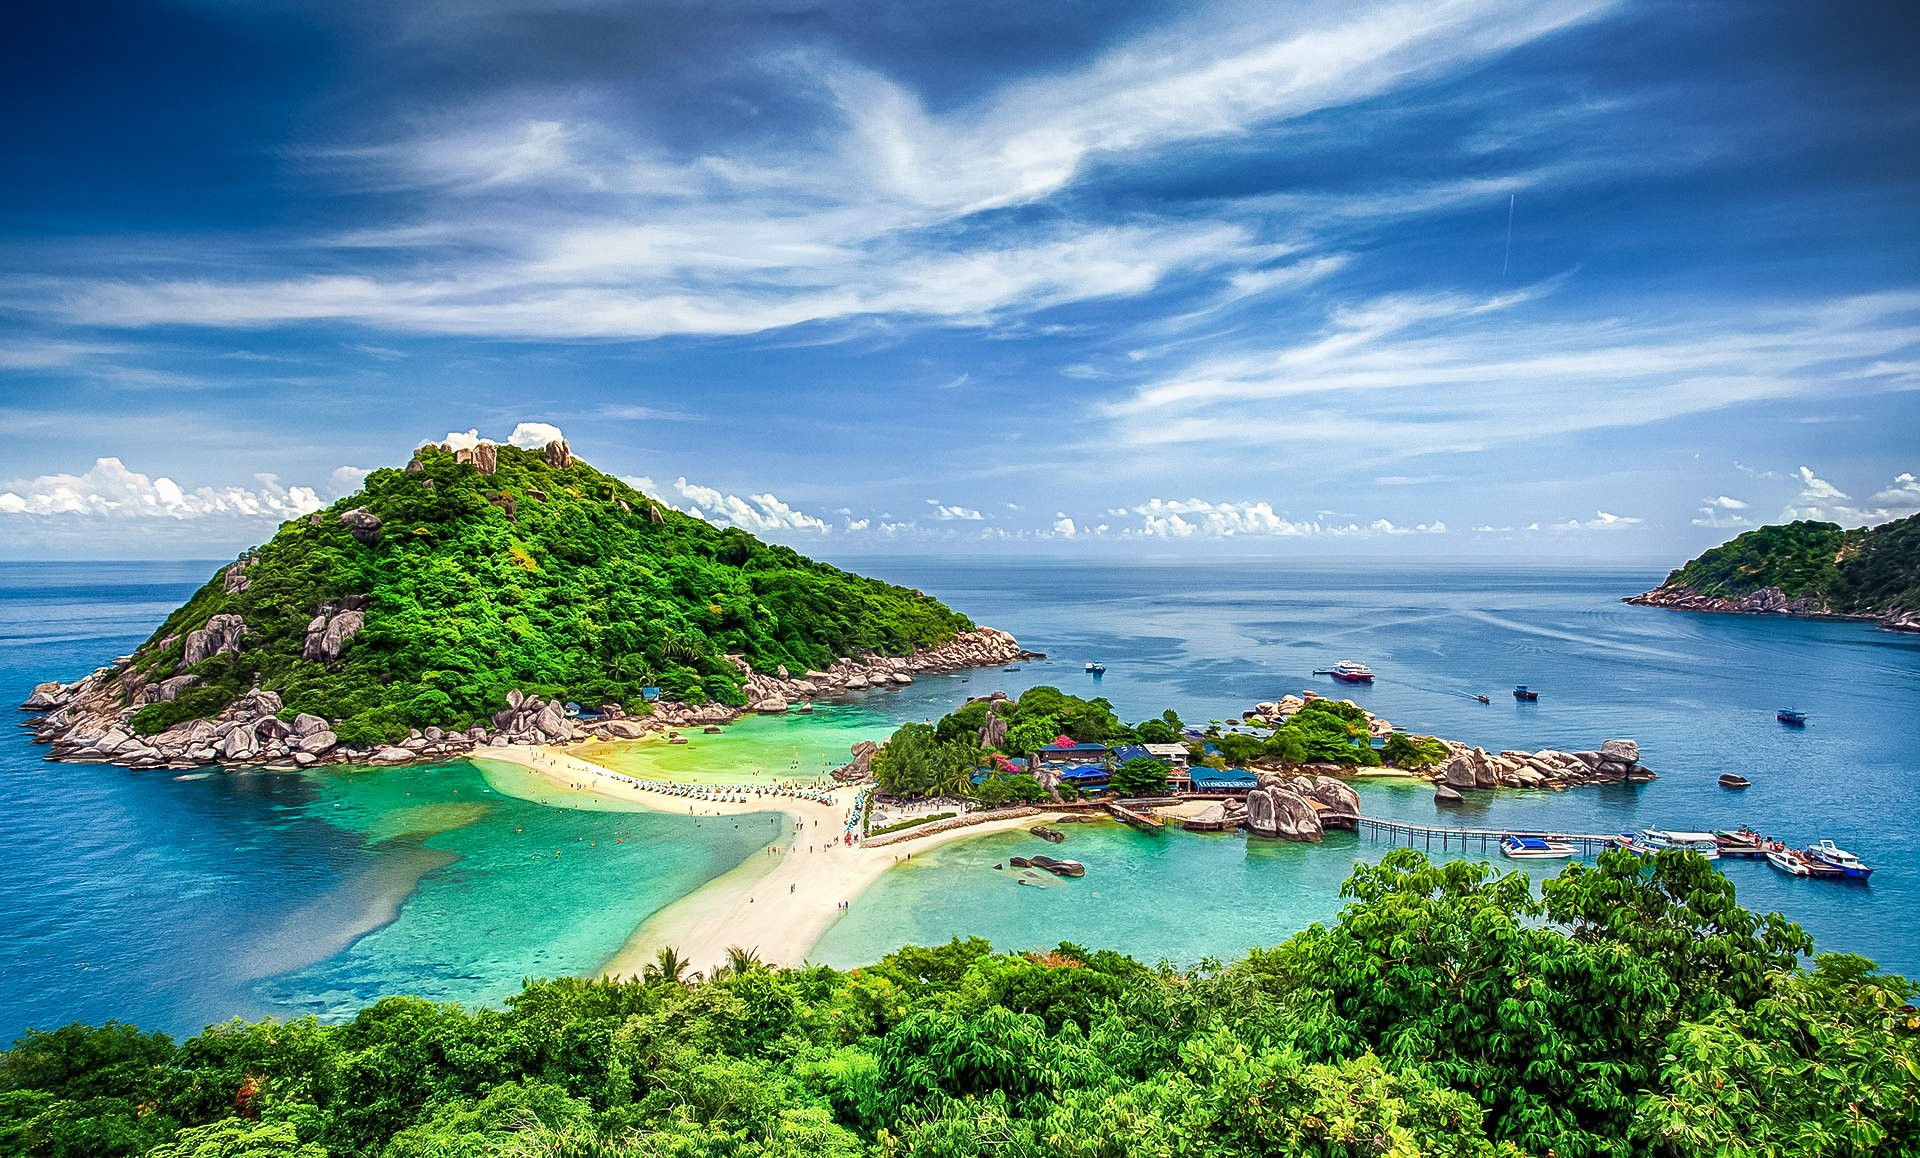 Koh Tao is a small paradise island located in the gulf of Thailand.